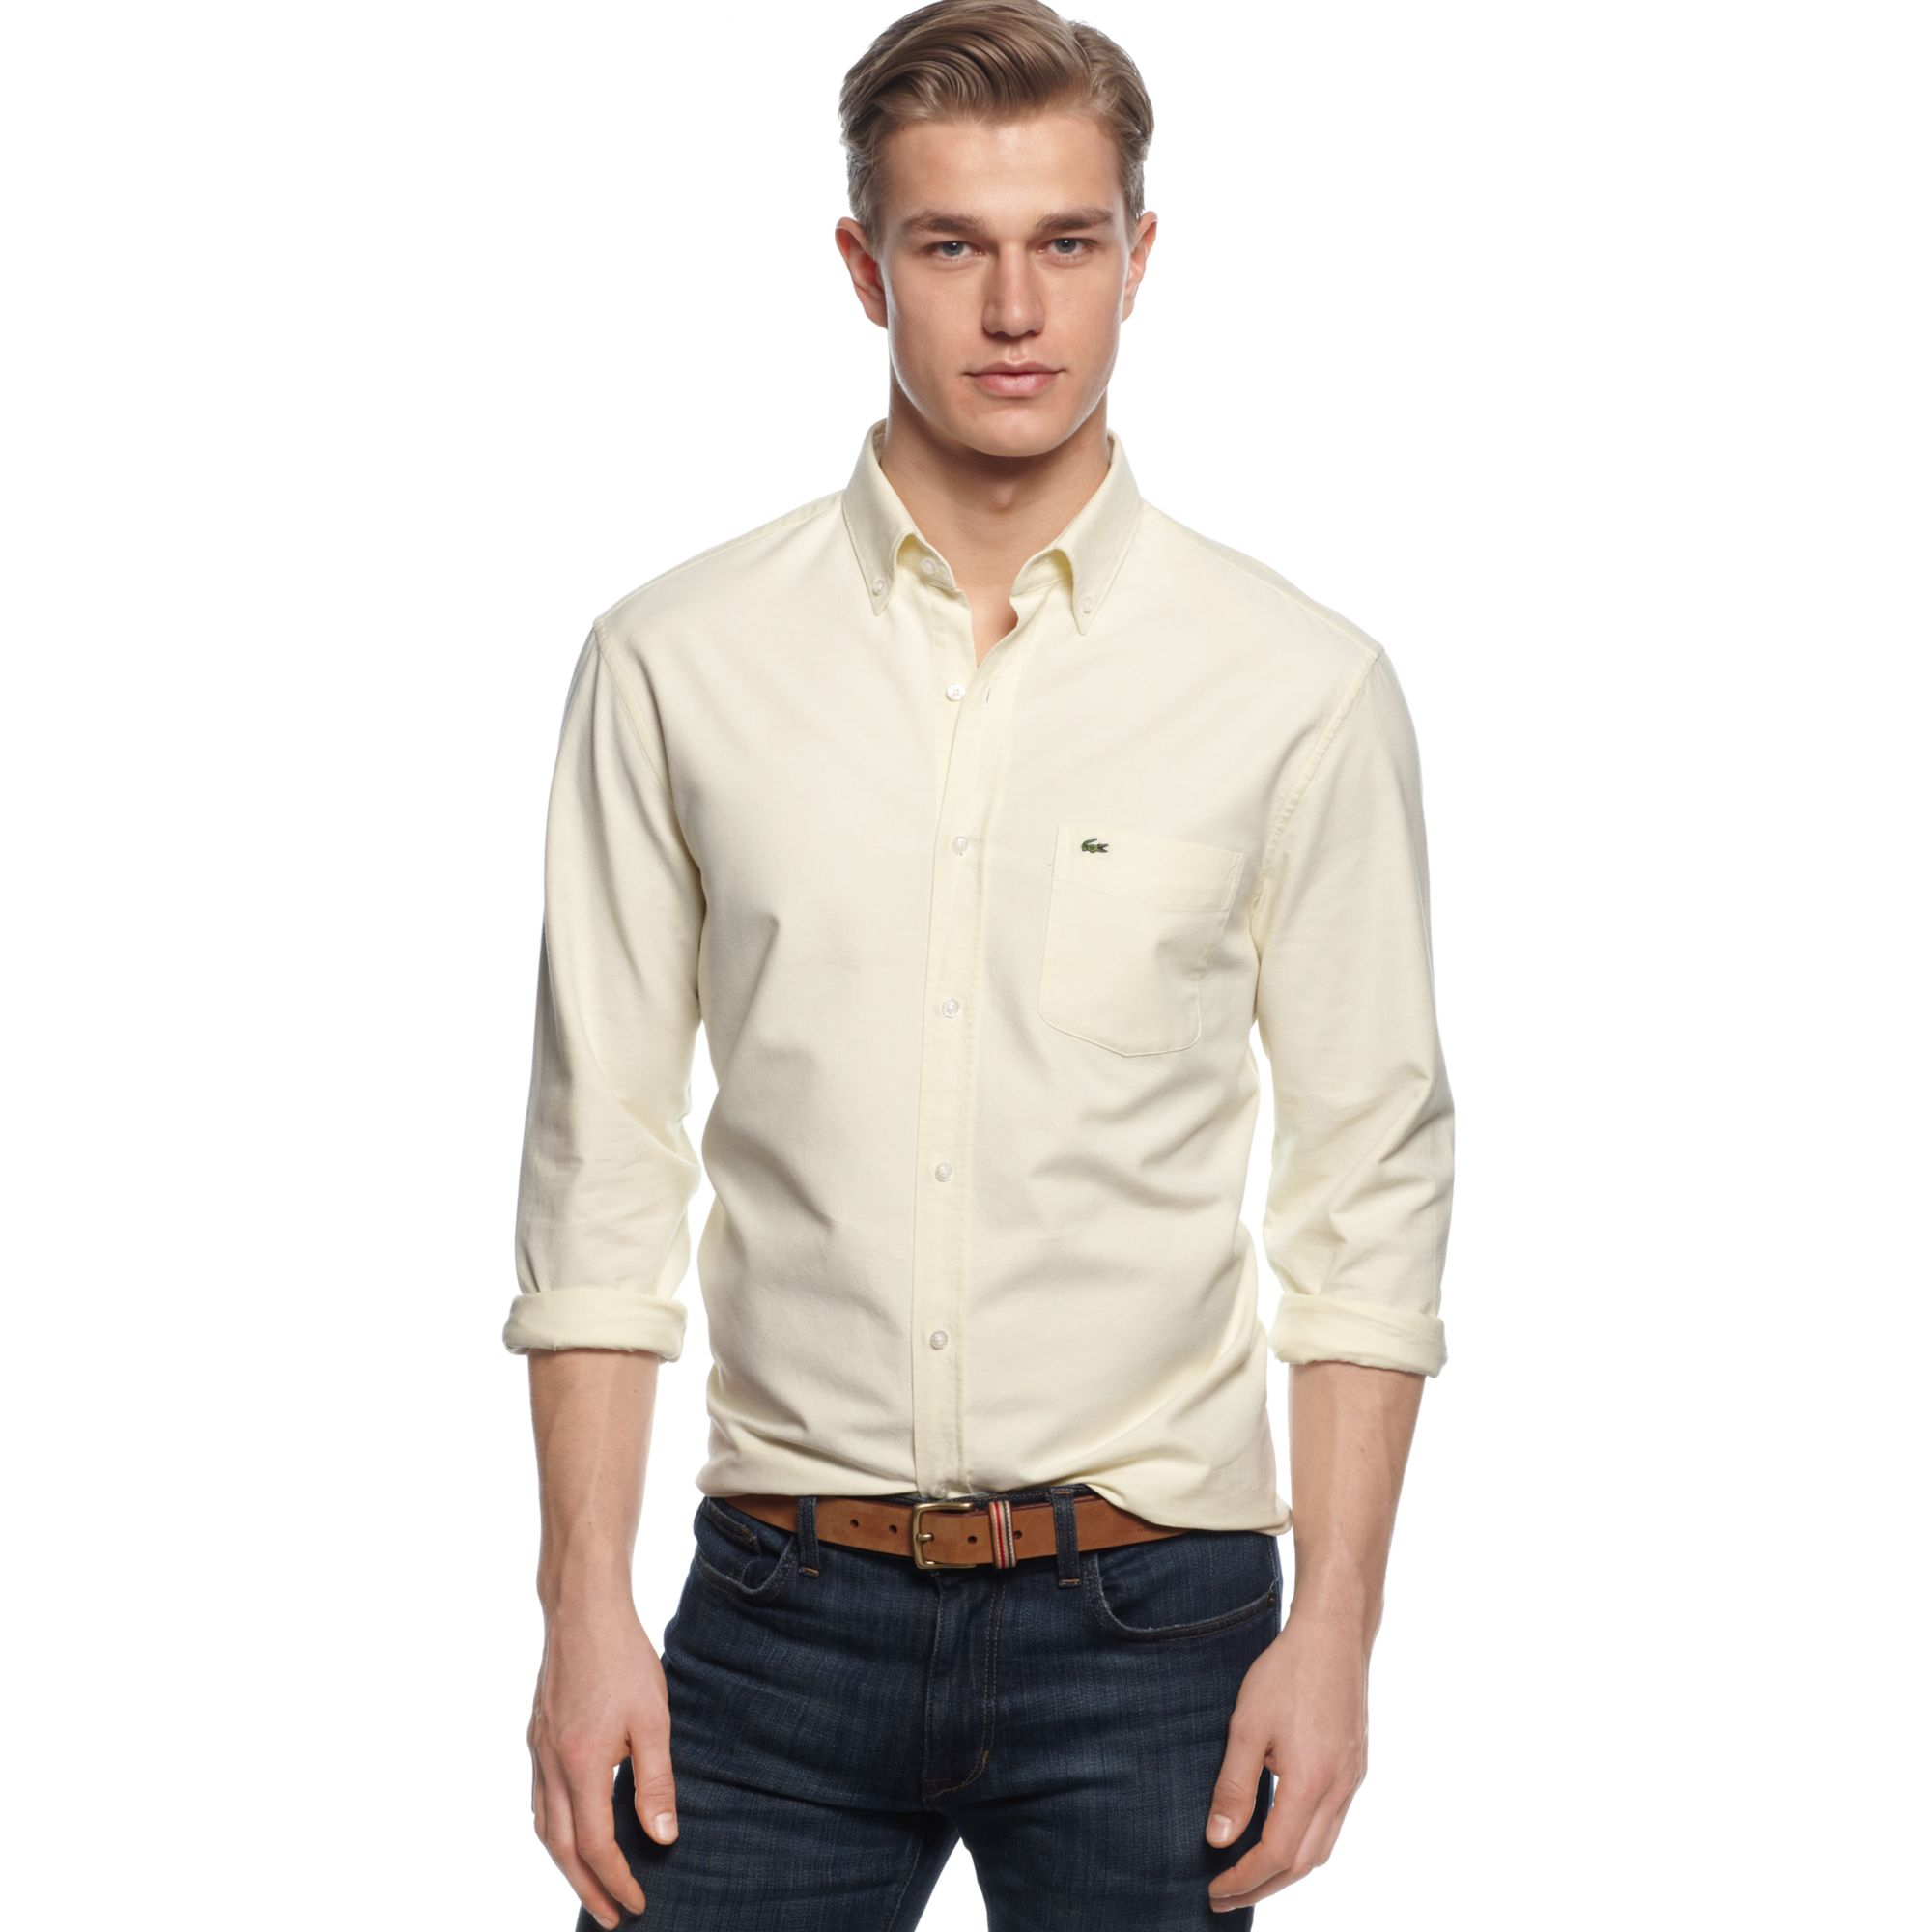 6db71688b Lyst - Lacoste Long Sleeve Button Down Oxford Shirt in White for Men